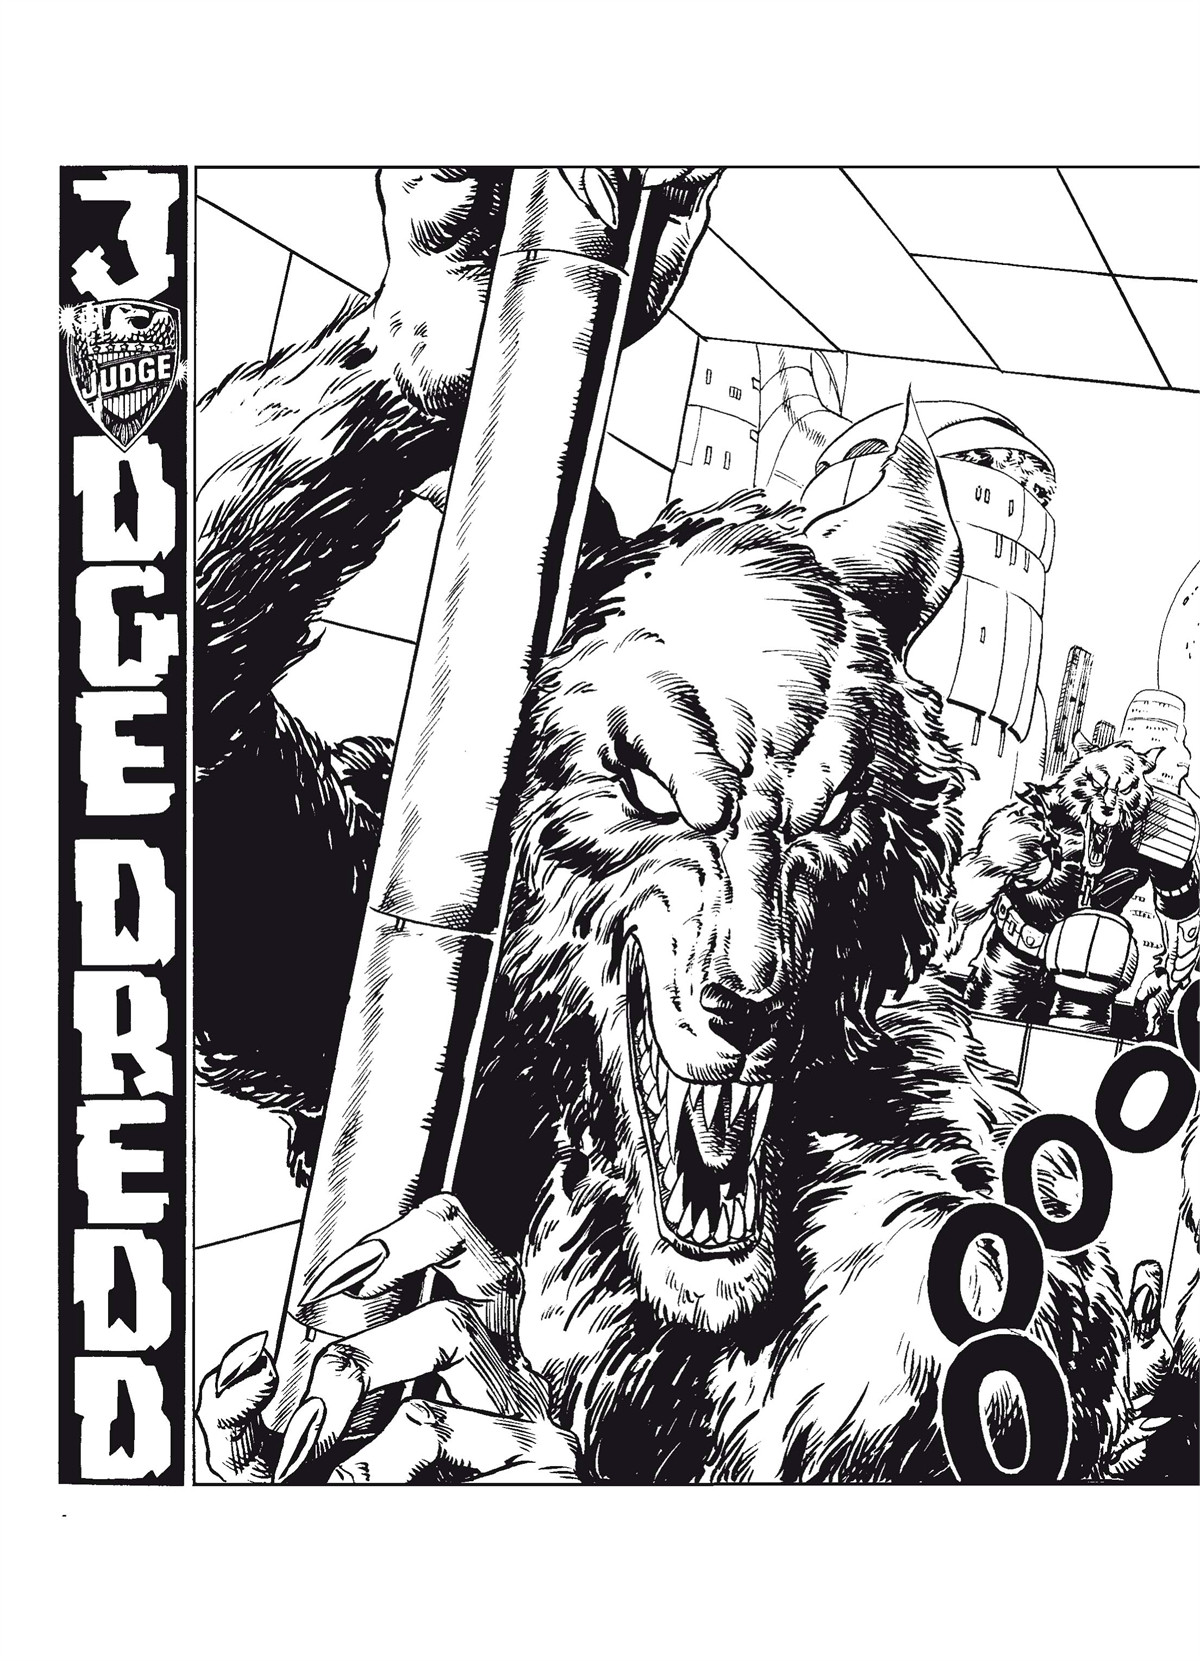 Judge-dredd-cry-of-the-werewolf-9781781080320.in01